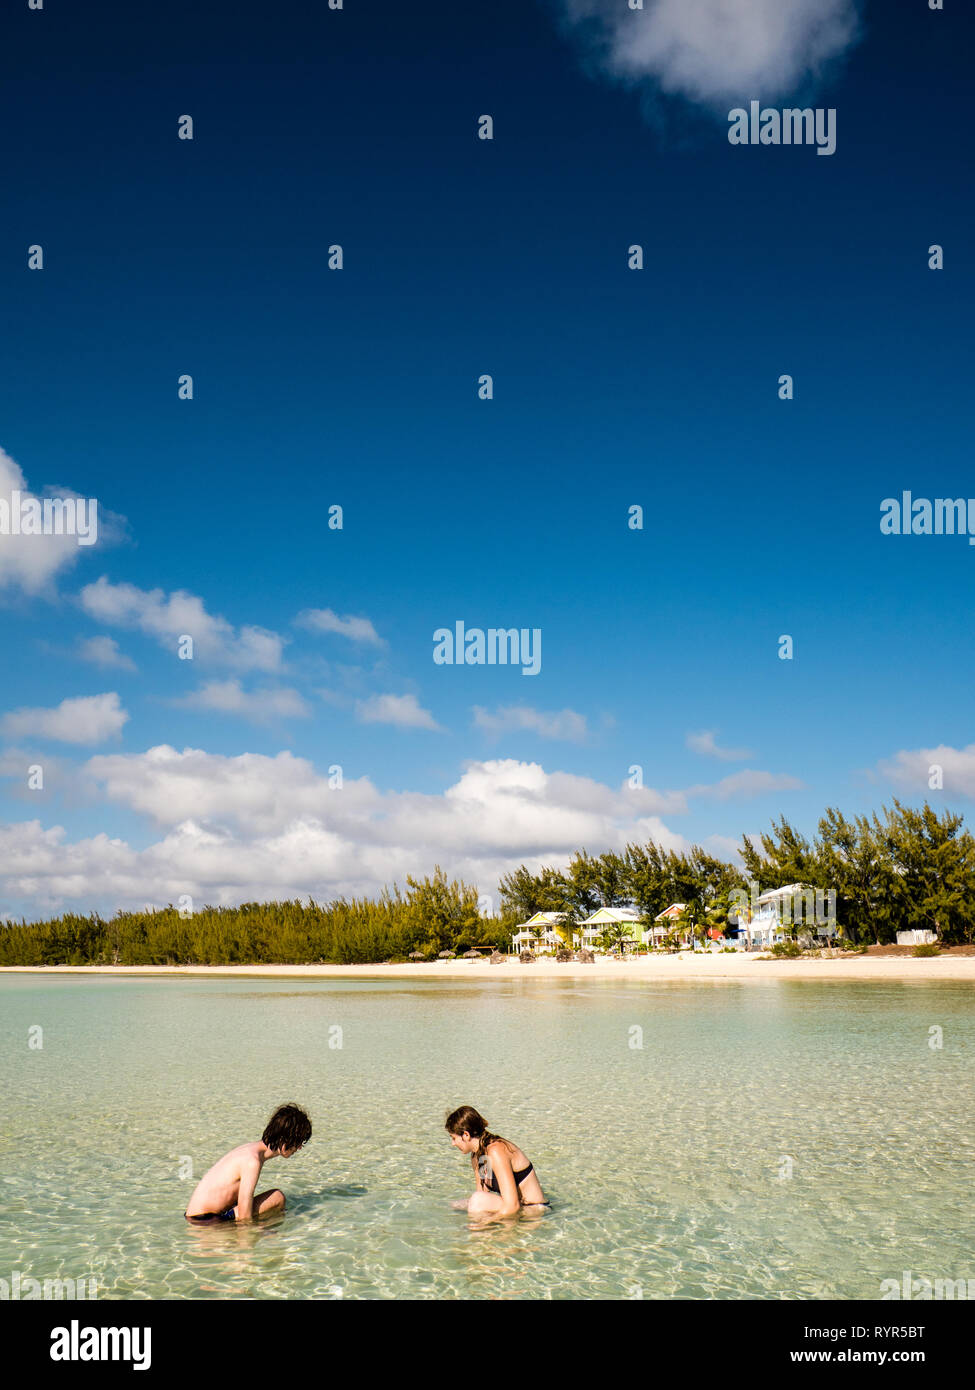 Teenagers Looking for Sea Creatures, Cocodimama Charming Resort, Caribean Sea, Governors Harbour, Eleutheria, The Bahamas, The Caribbean. - Stock Image